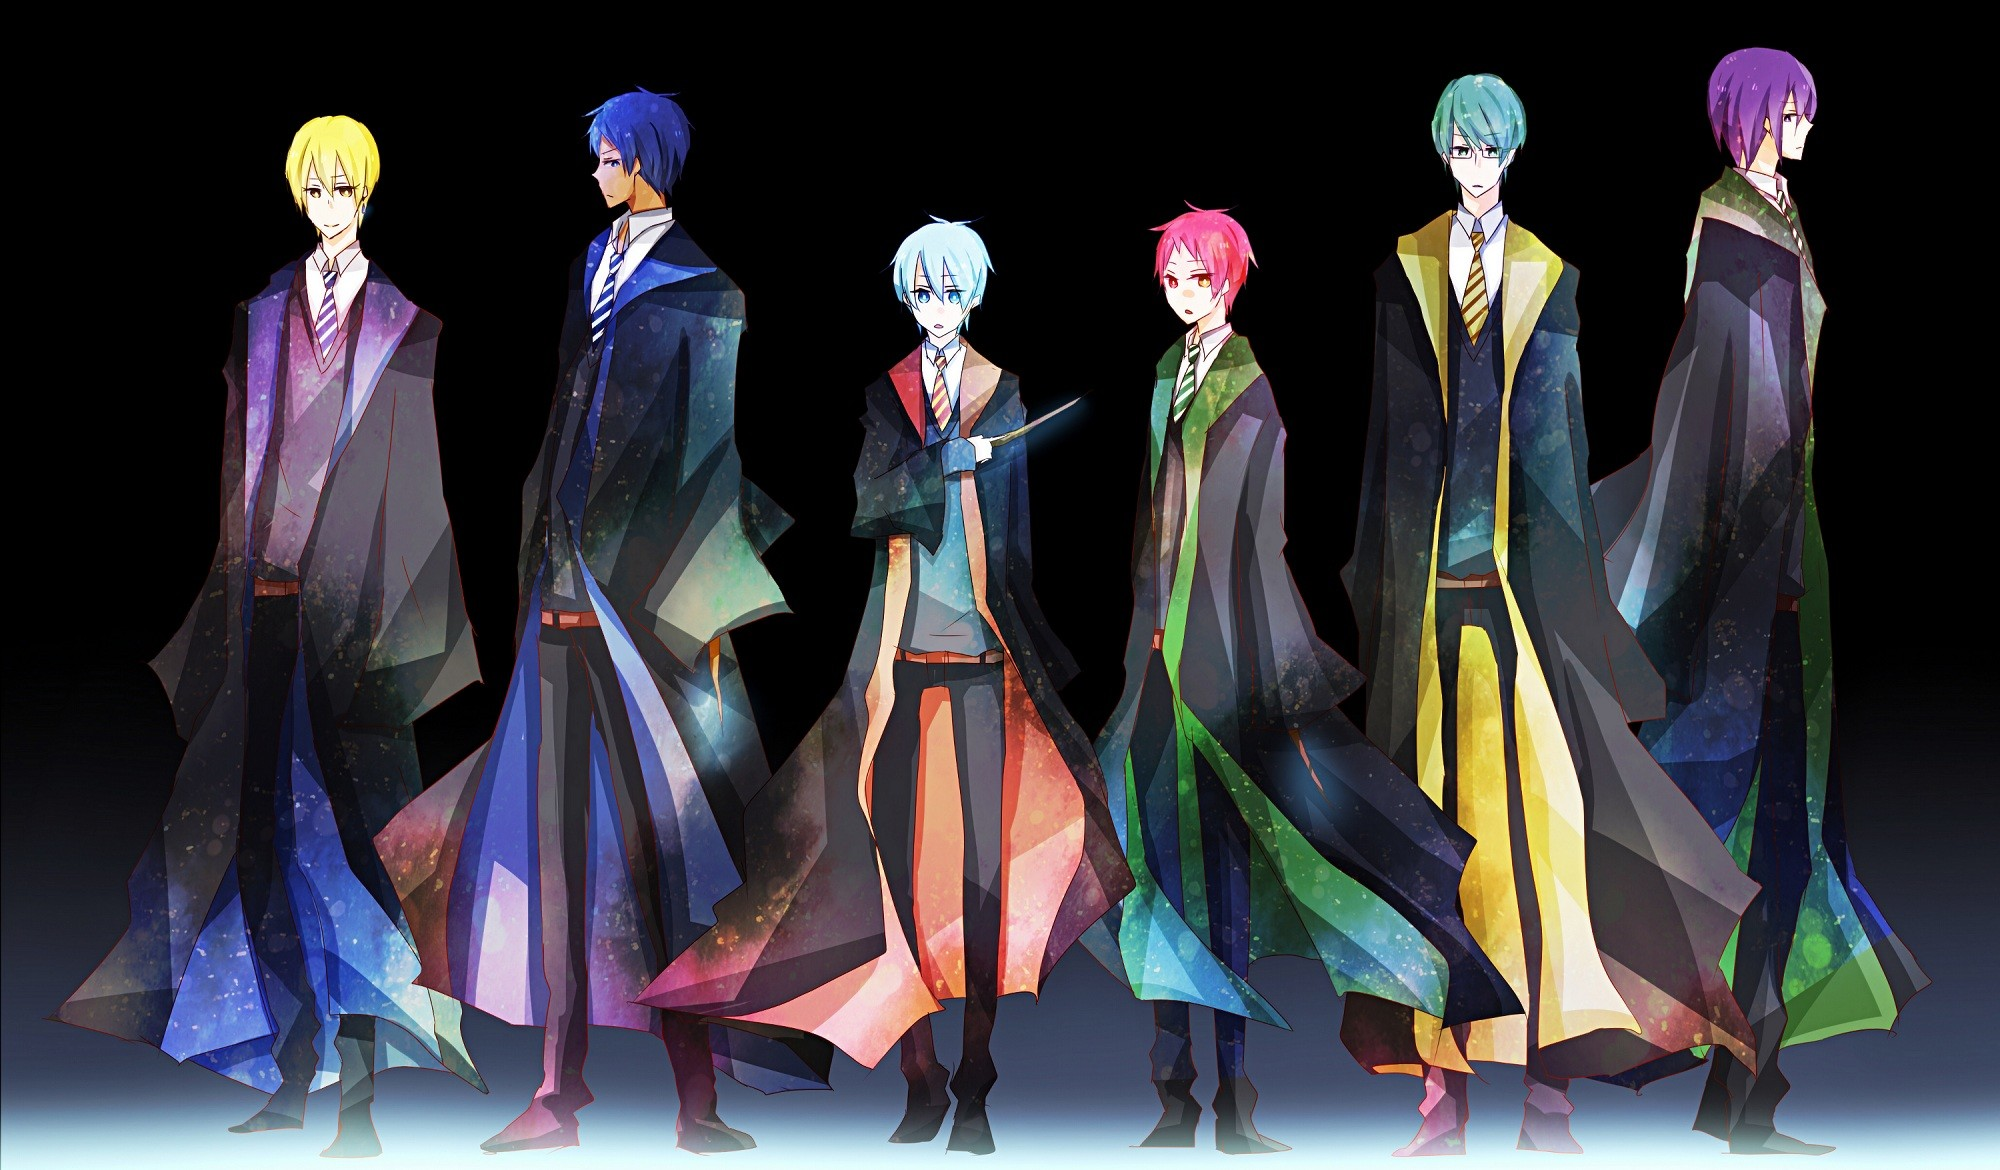 2000x1170 kuroko no basket wallpapers - Google Search